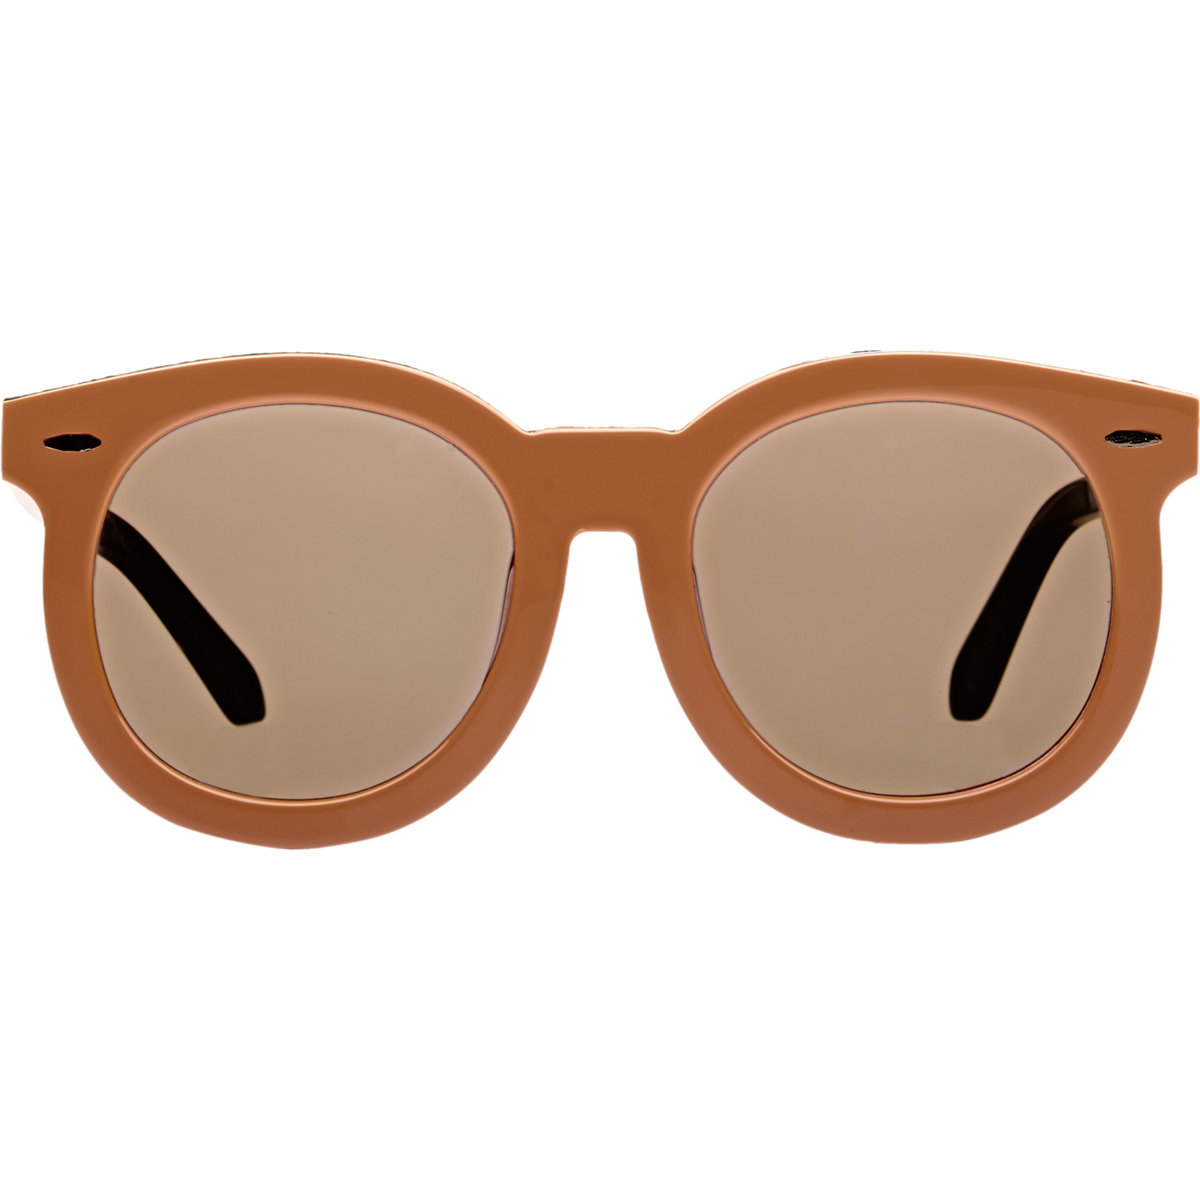 32403e292bc Lyst - Karen Walker Super Duper Thistle Sunglasses in Brown